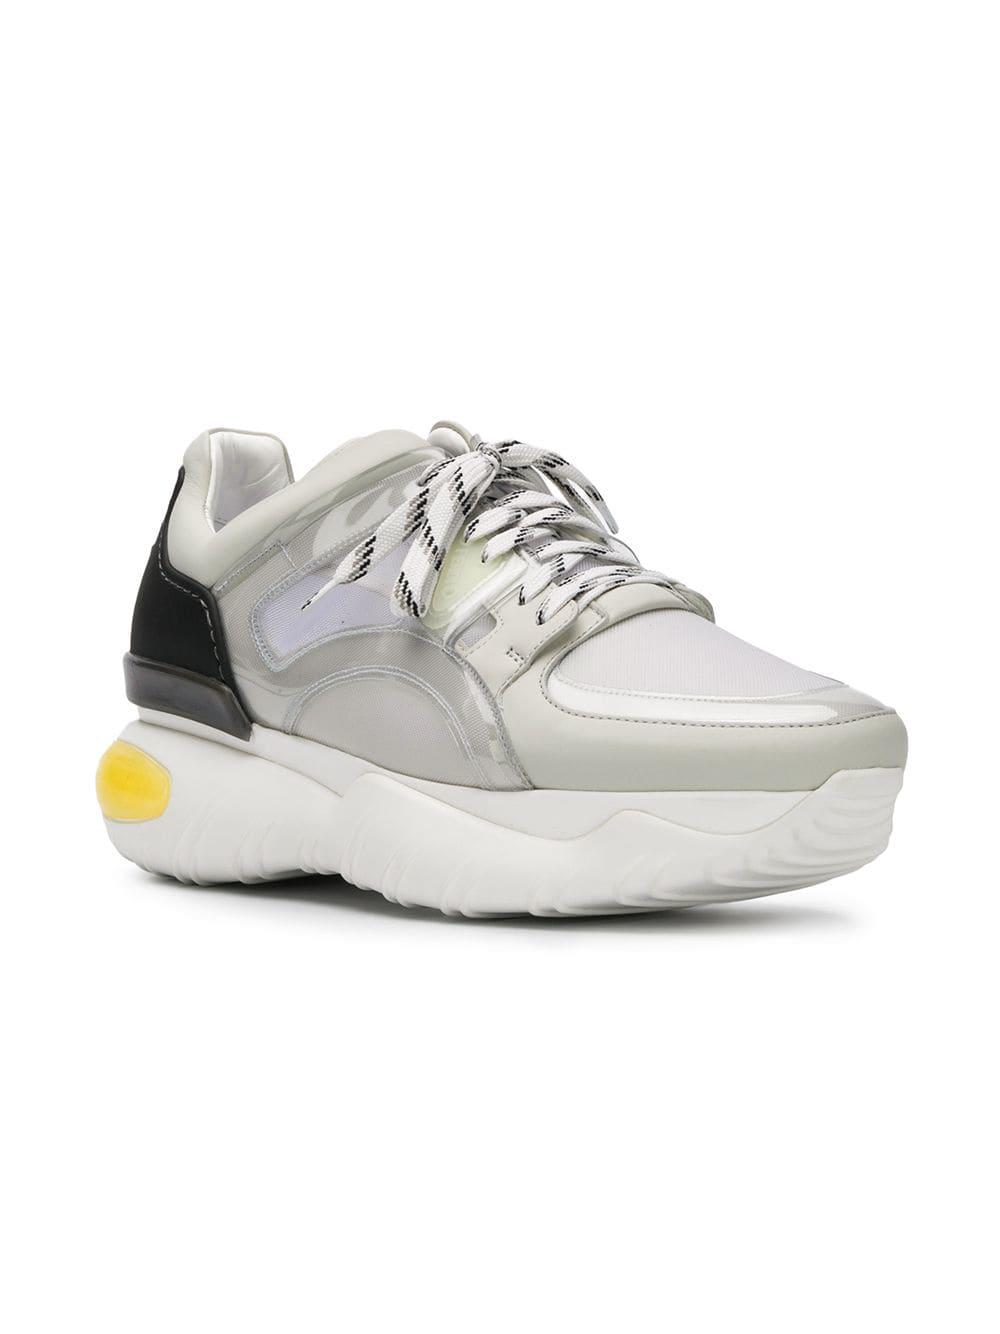 0c4dfff9a2 Lyst - Fendi Leather & Pvc Sneakers in White for Men - Save 50.0%